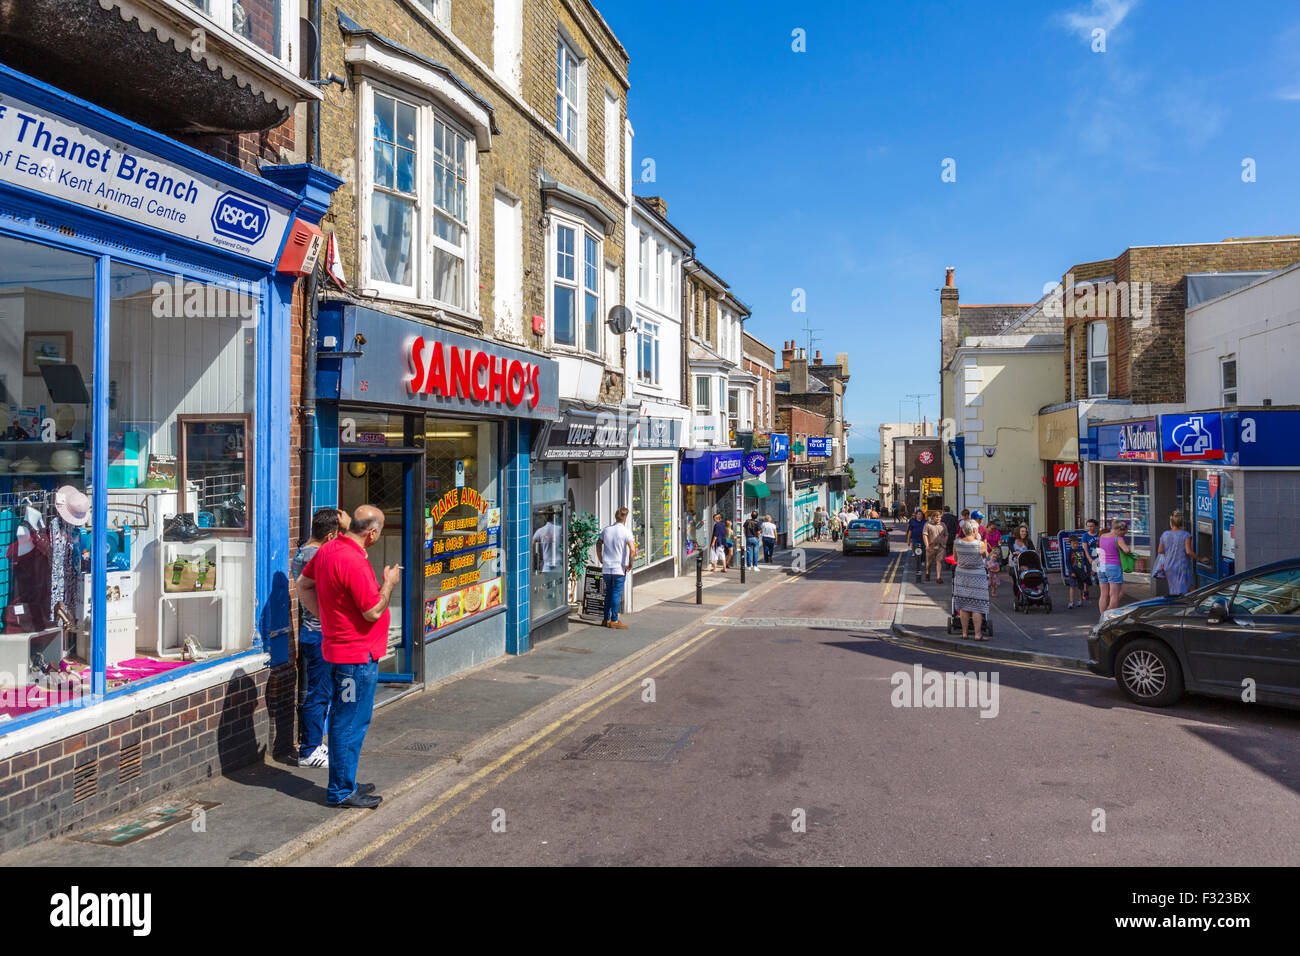 View down the High Street towards the sea, Broadstairs, Kent, England, UK - Stock Image